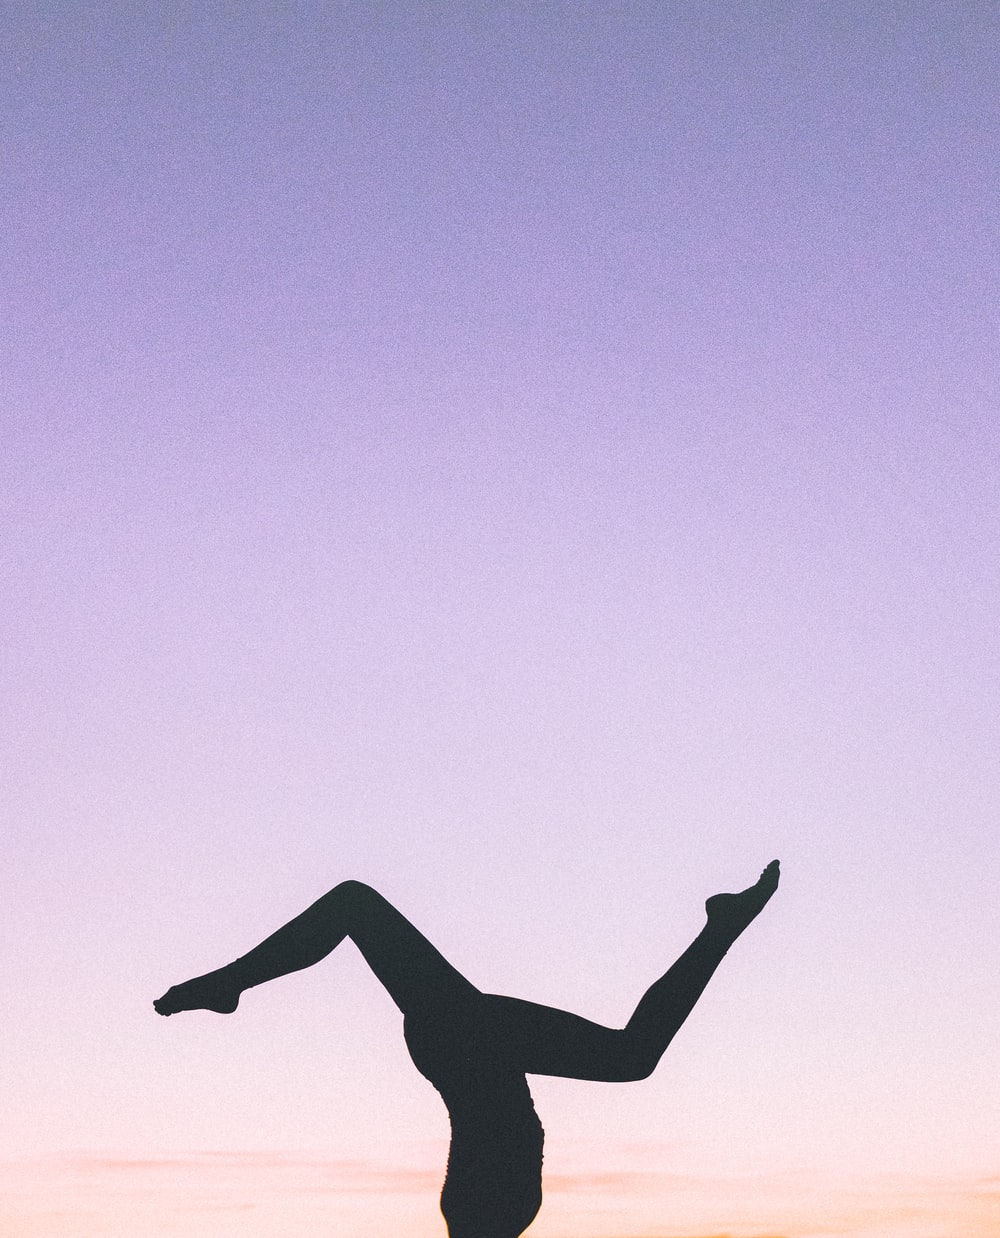 silhouette photography of person doing cartwheel